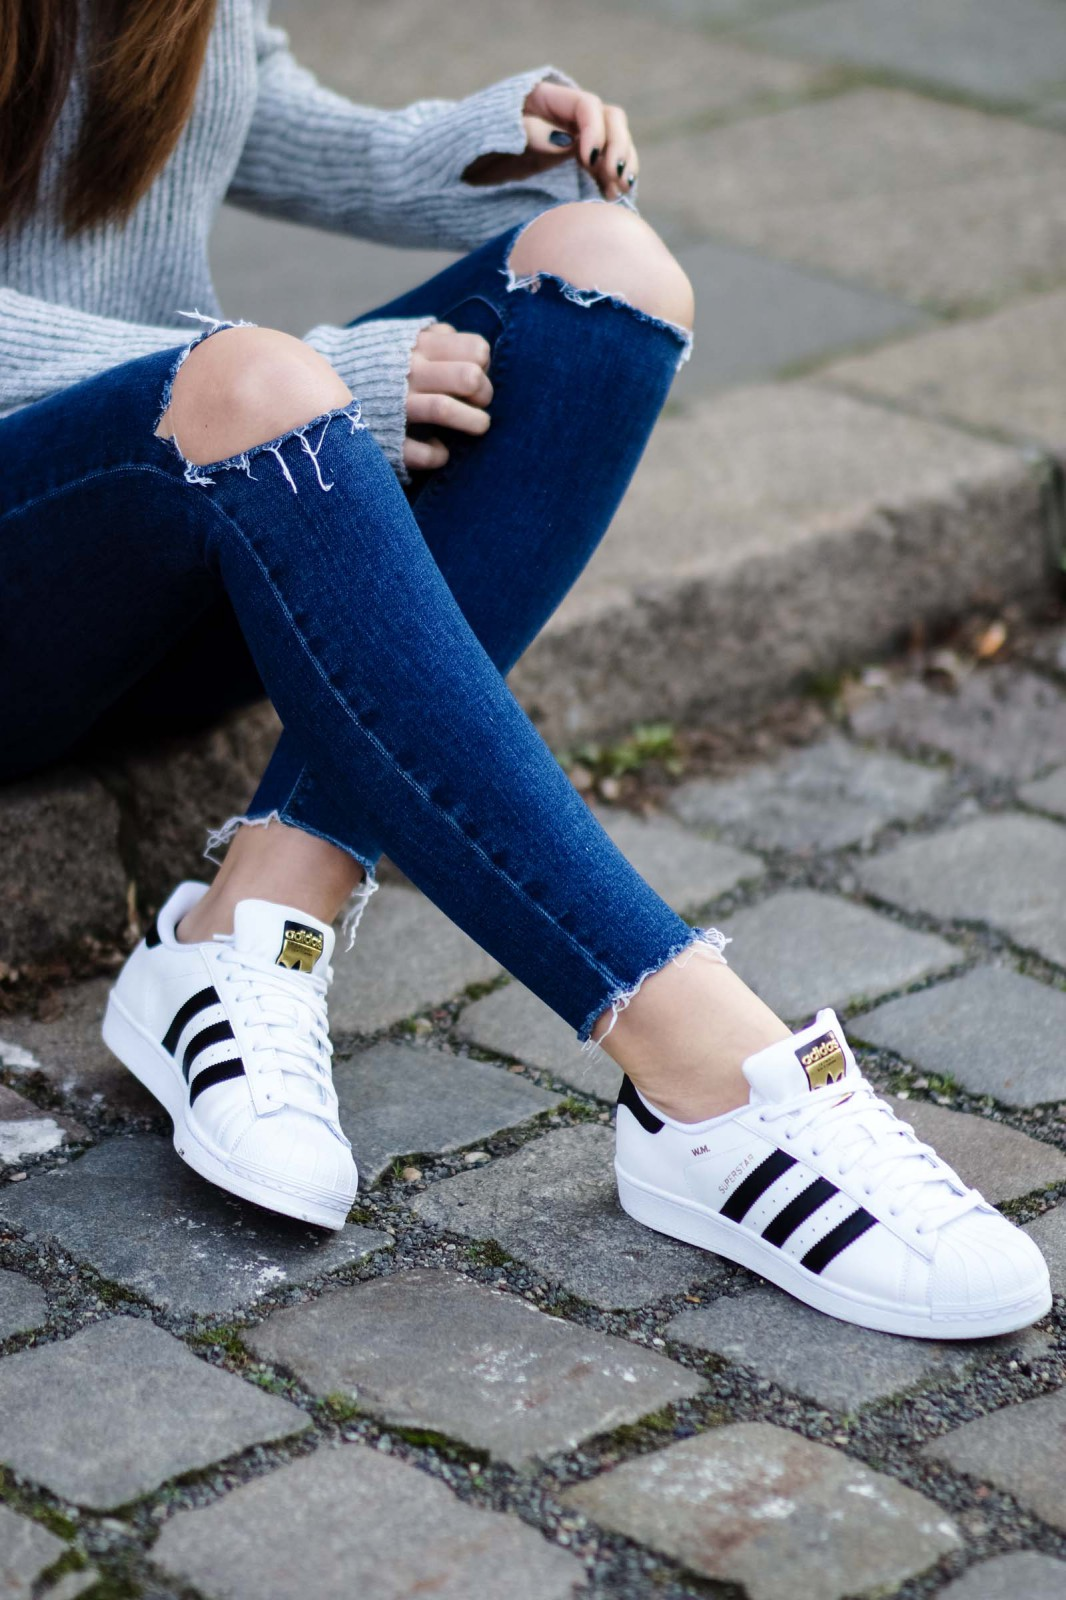 How to wear Superstars